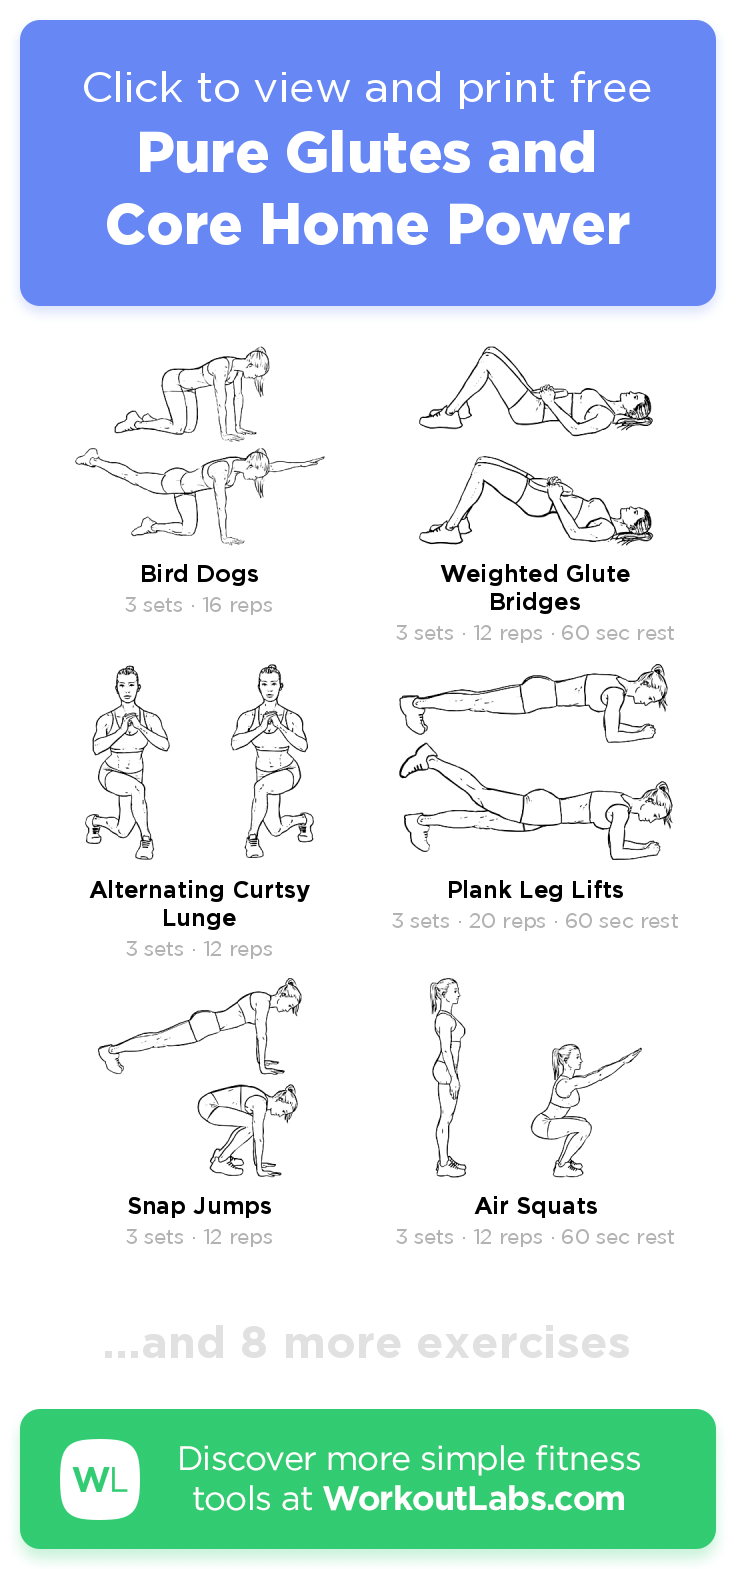 Pure Glutes And Core Home Power Click To View And Print This Illustrated Exercise Plan Created With Work Workout Labs Workout Programs Home Exercise Program